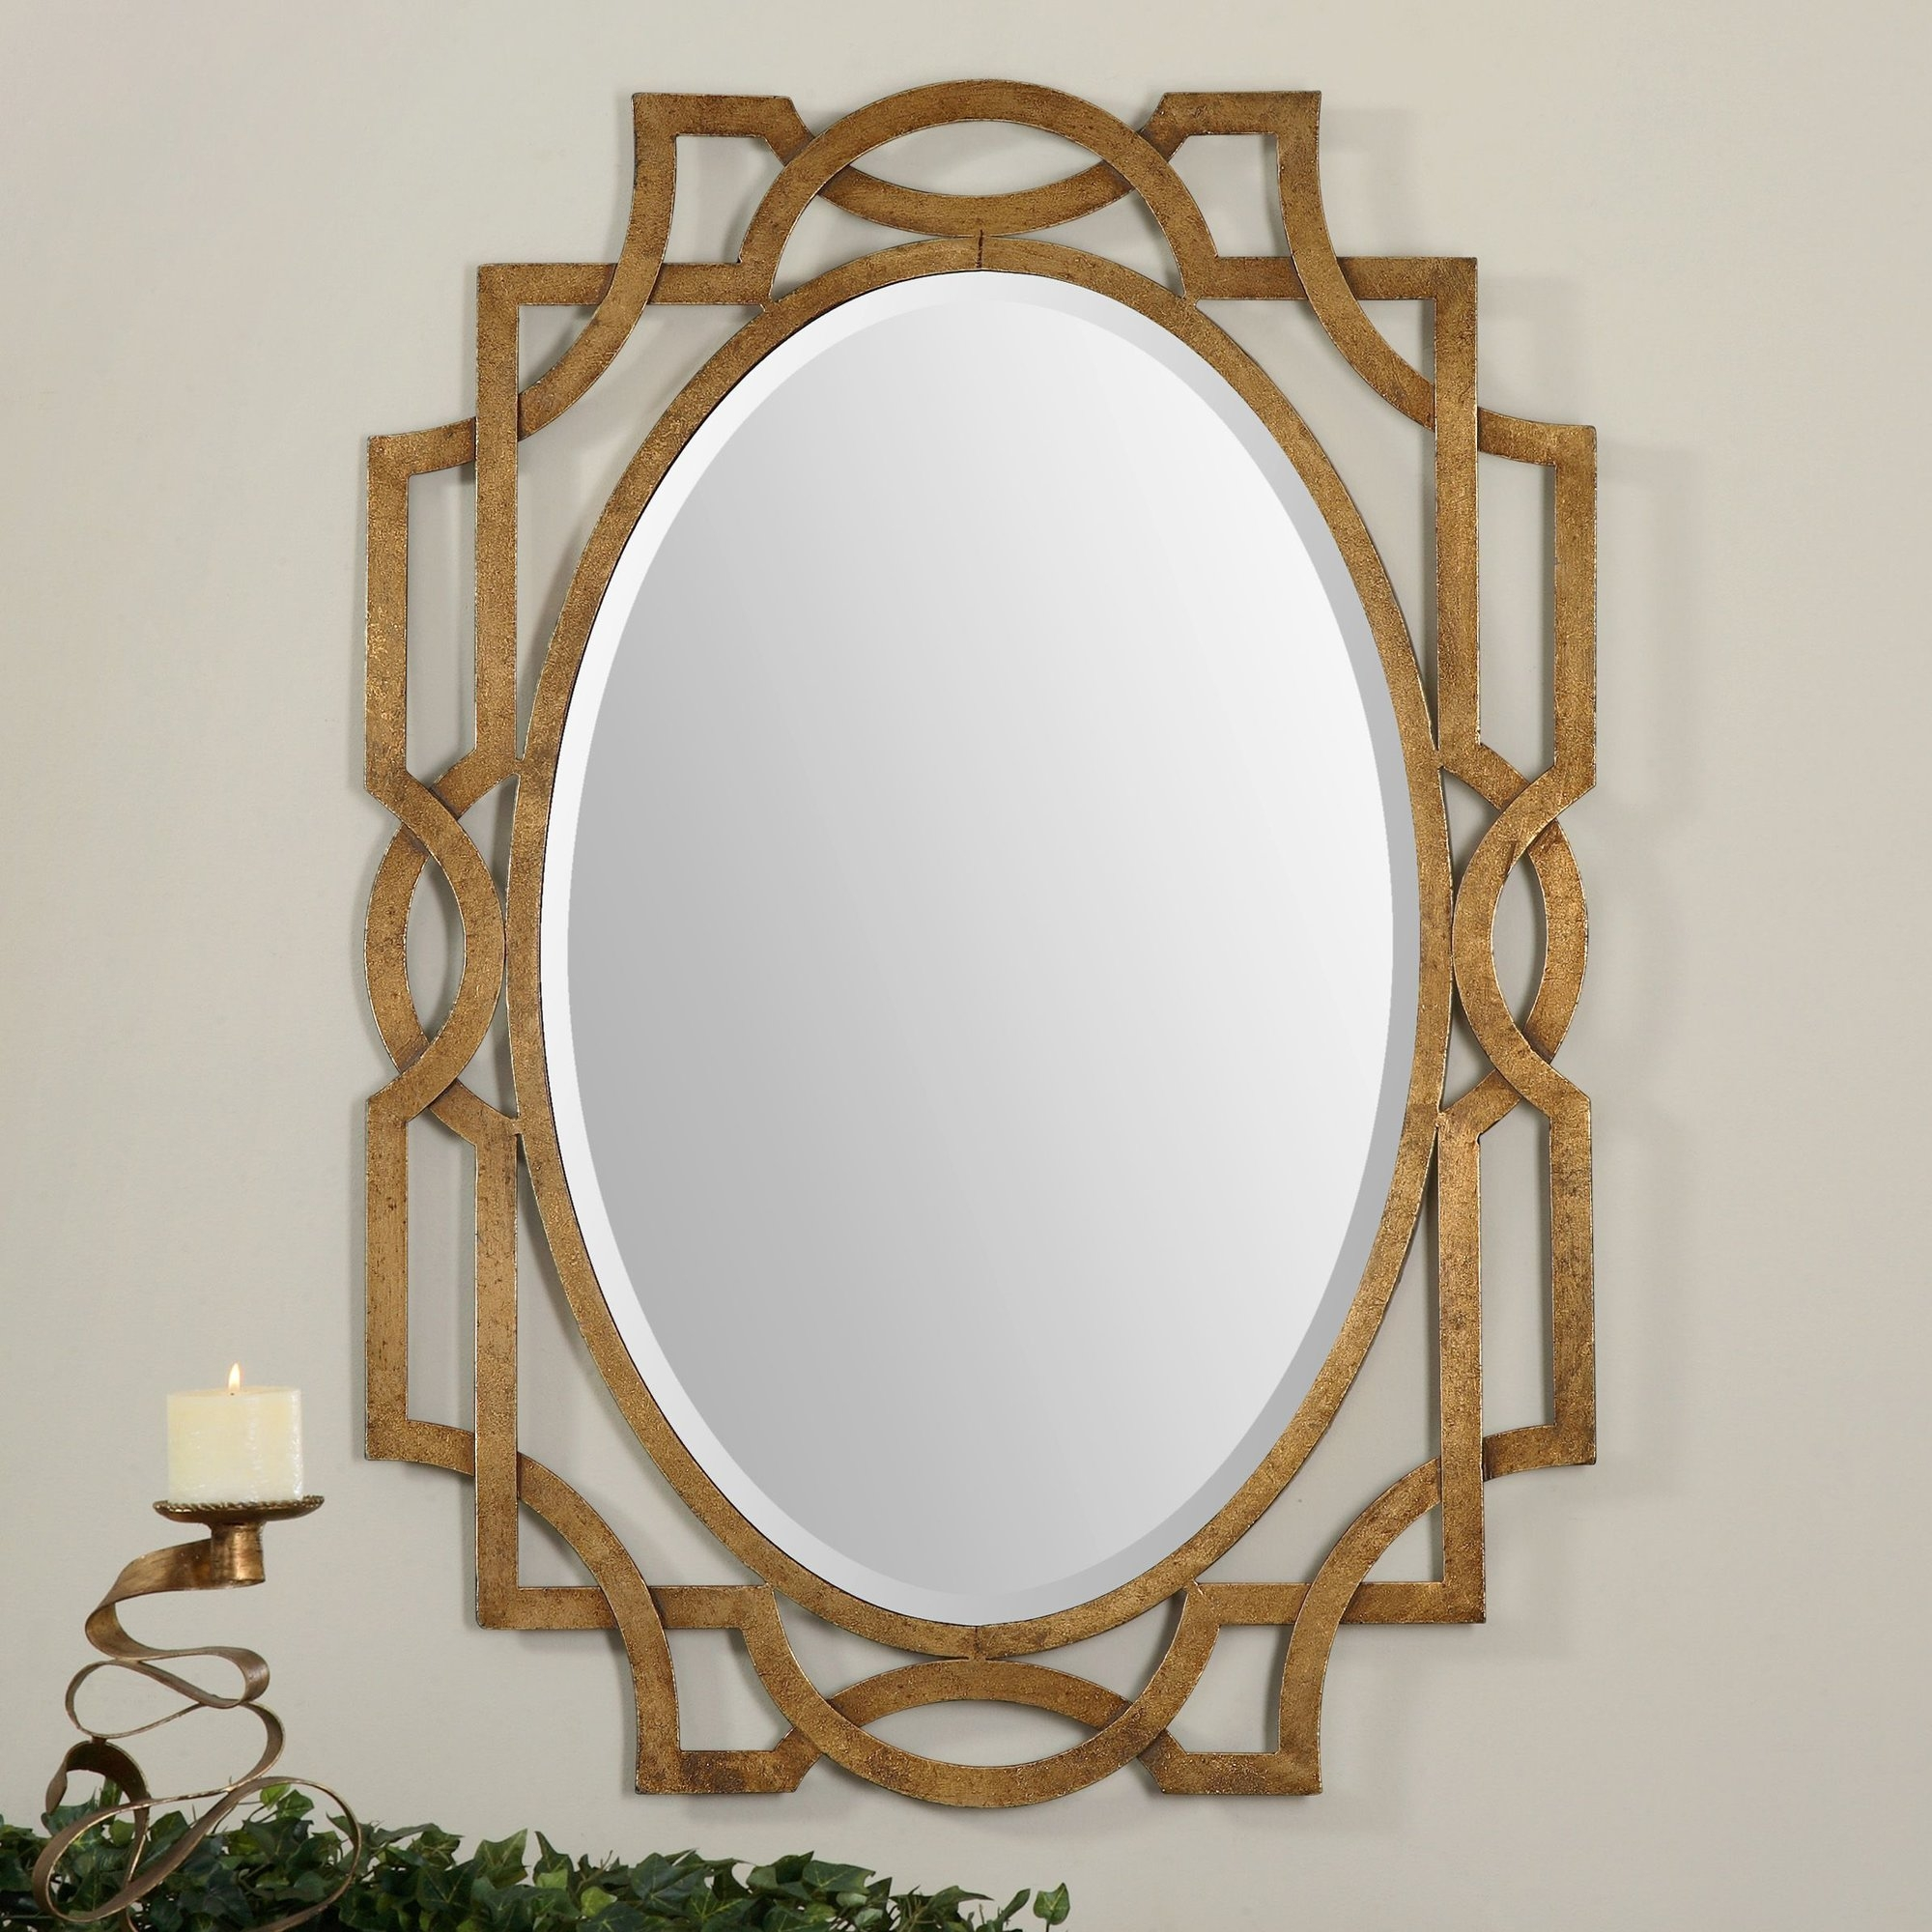 Hawn Gold Oval Wall Mirror Reviews Allmodern Within Oval Wall Mirrors (Image 5 of 15)